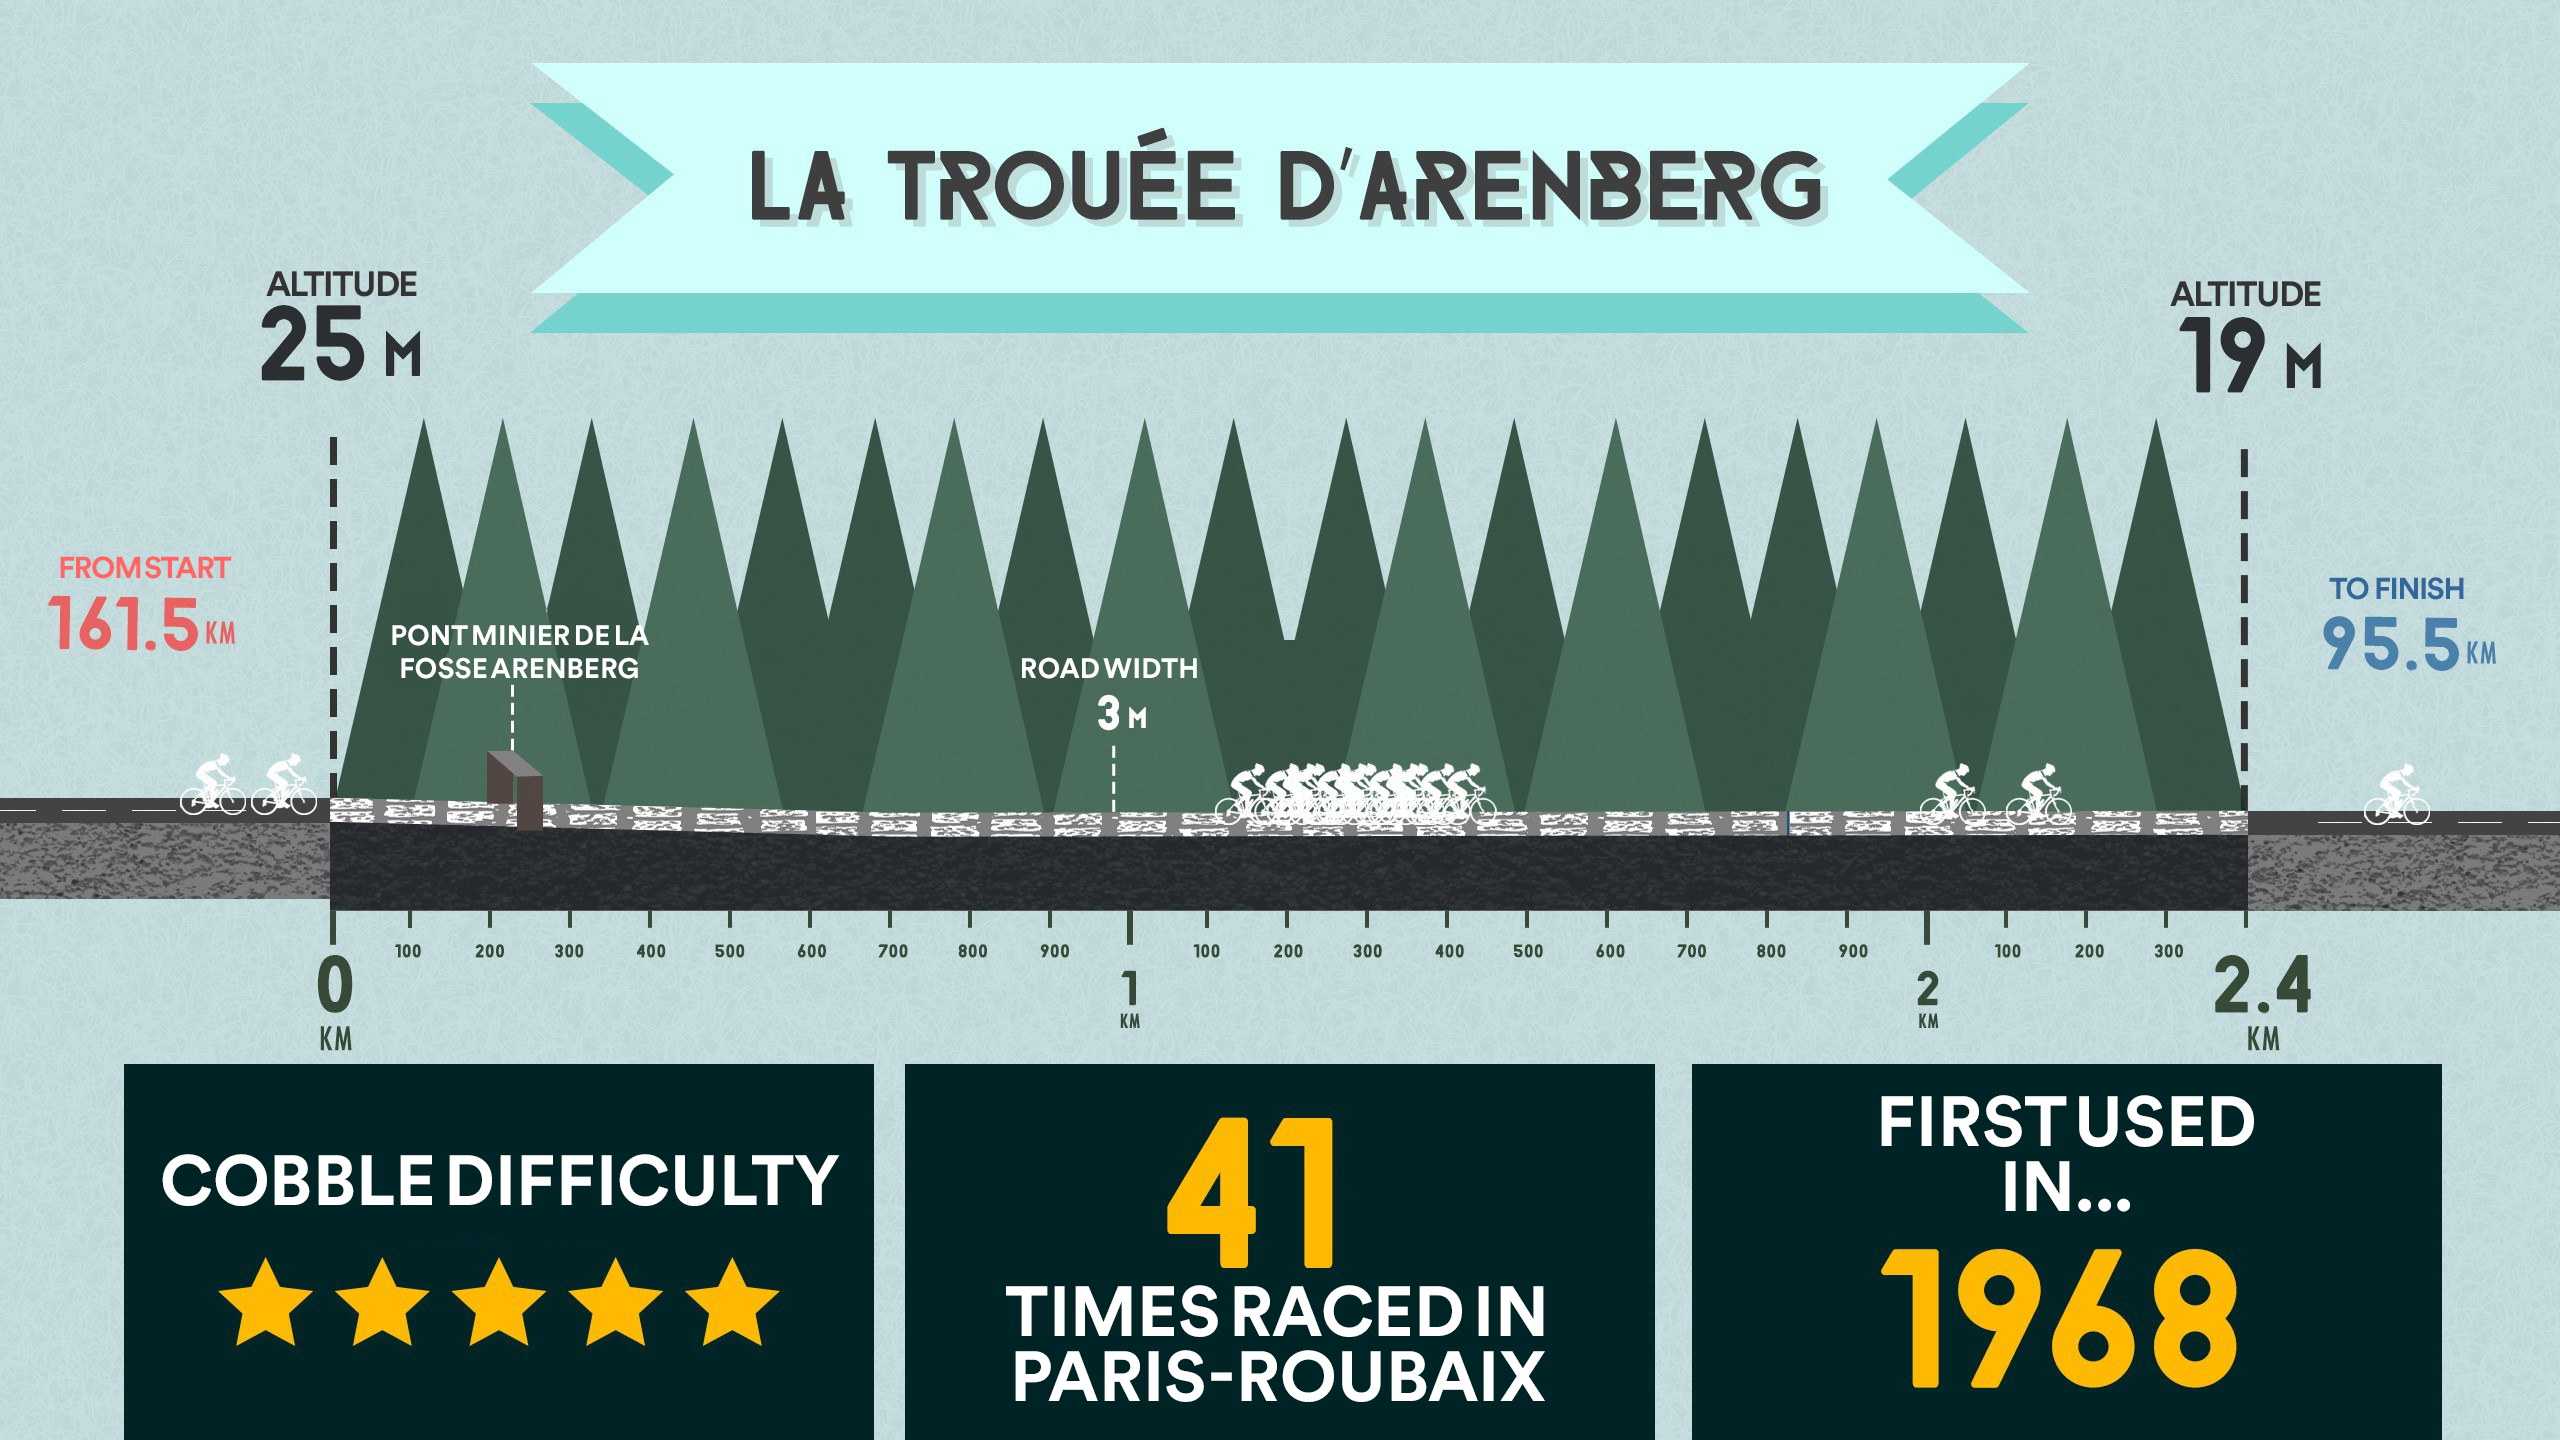 Key data of the Trouée d'Arenberg - Visual by Clovis Museux, Eurosport